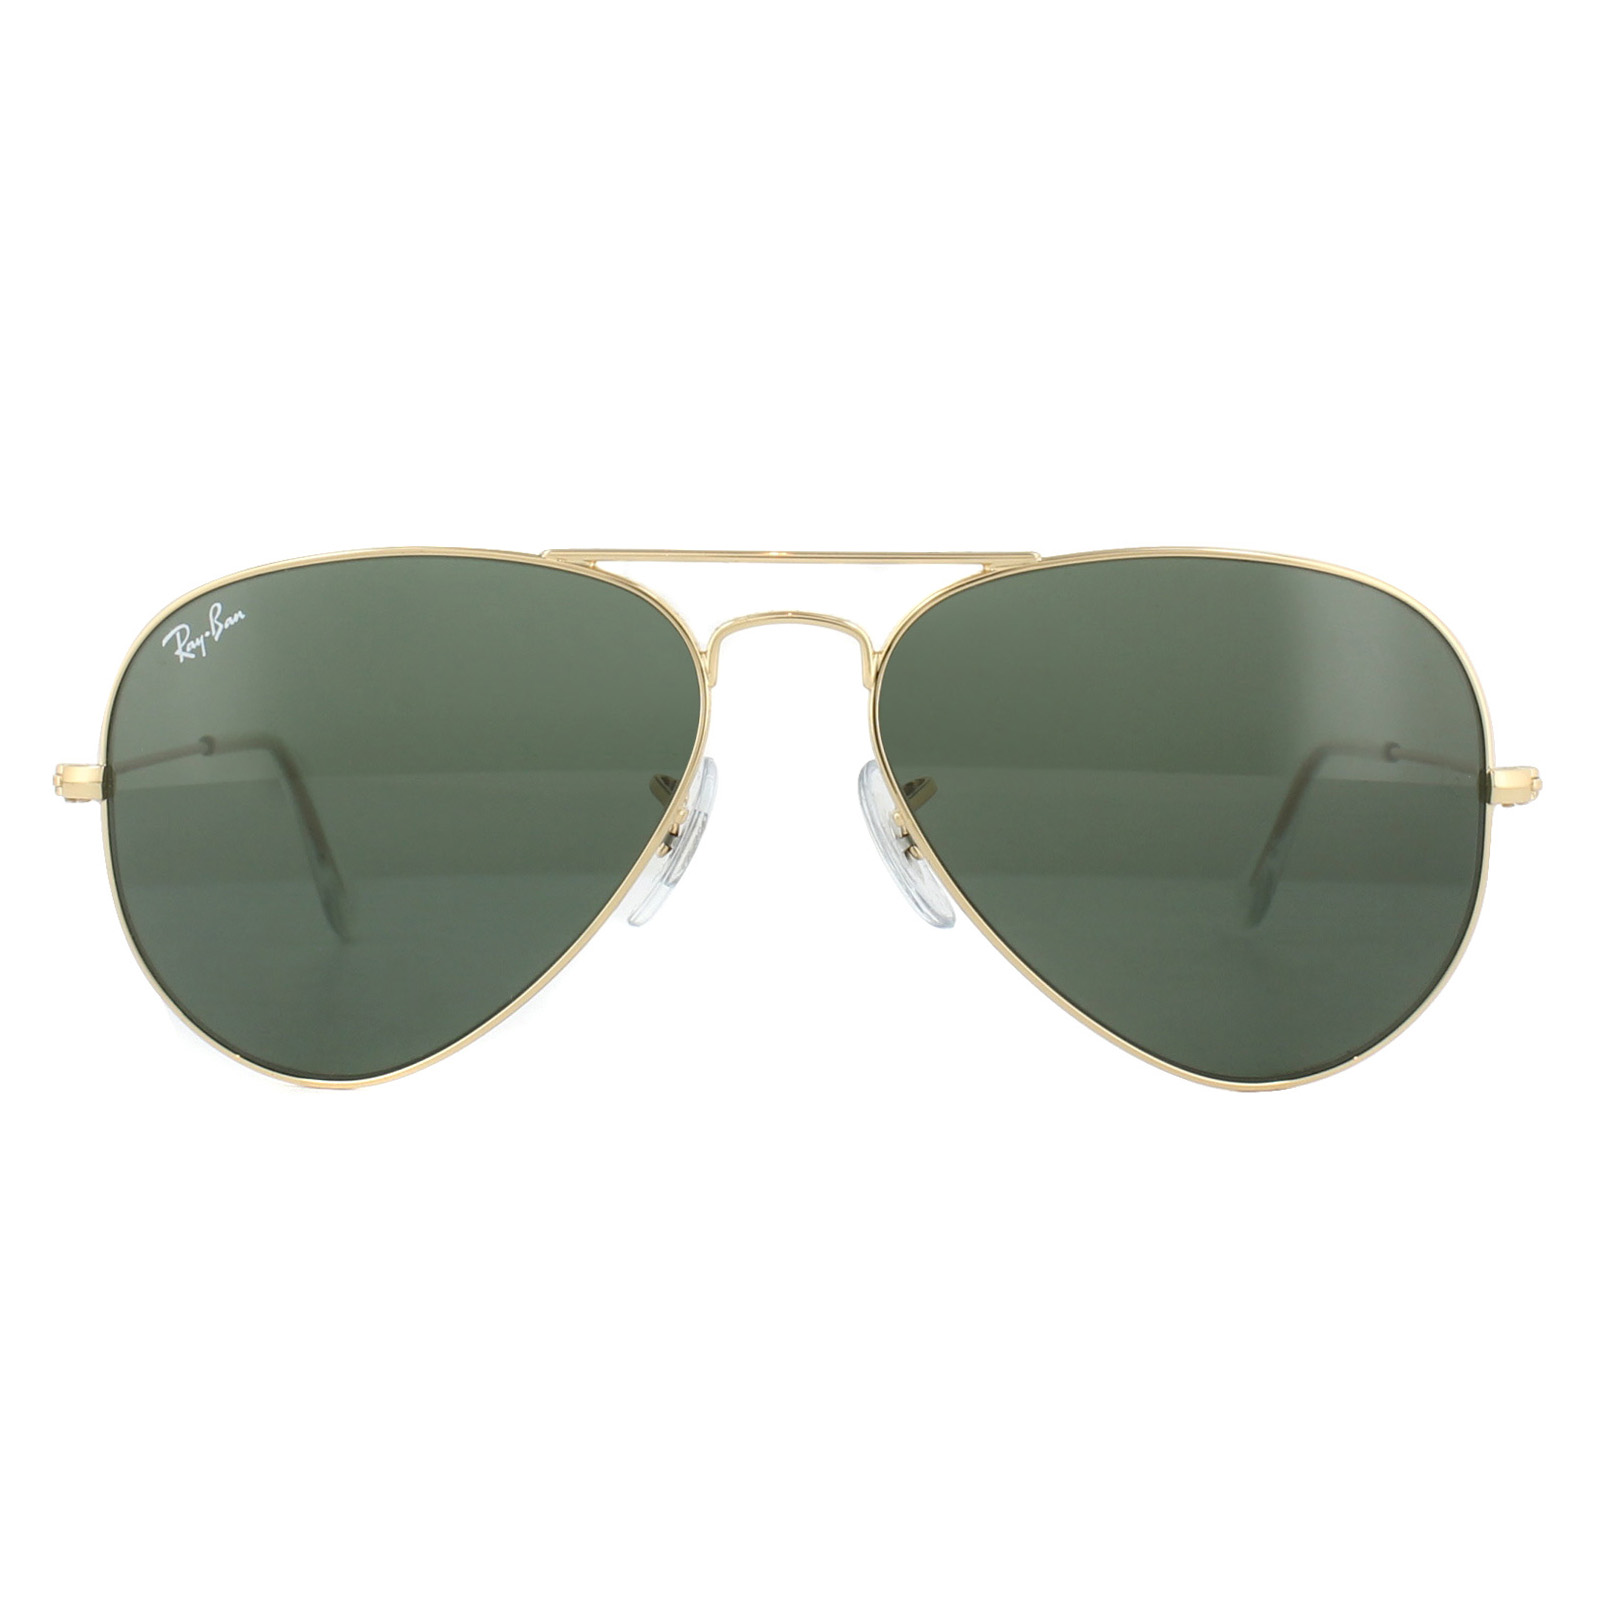 eb36cdd5f352a Sentinel Ray-Ban Sunglasses Aviator 3025 W3234 Gold Green G-15 Small 55mm